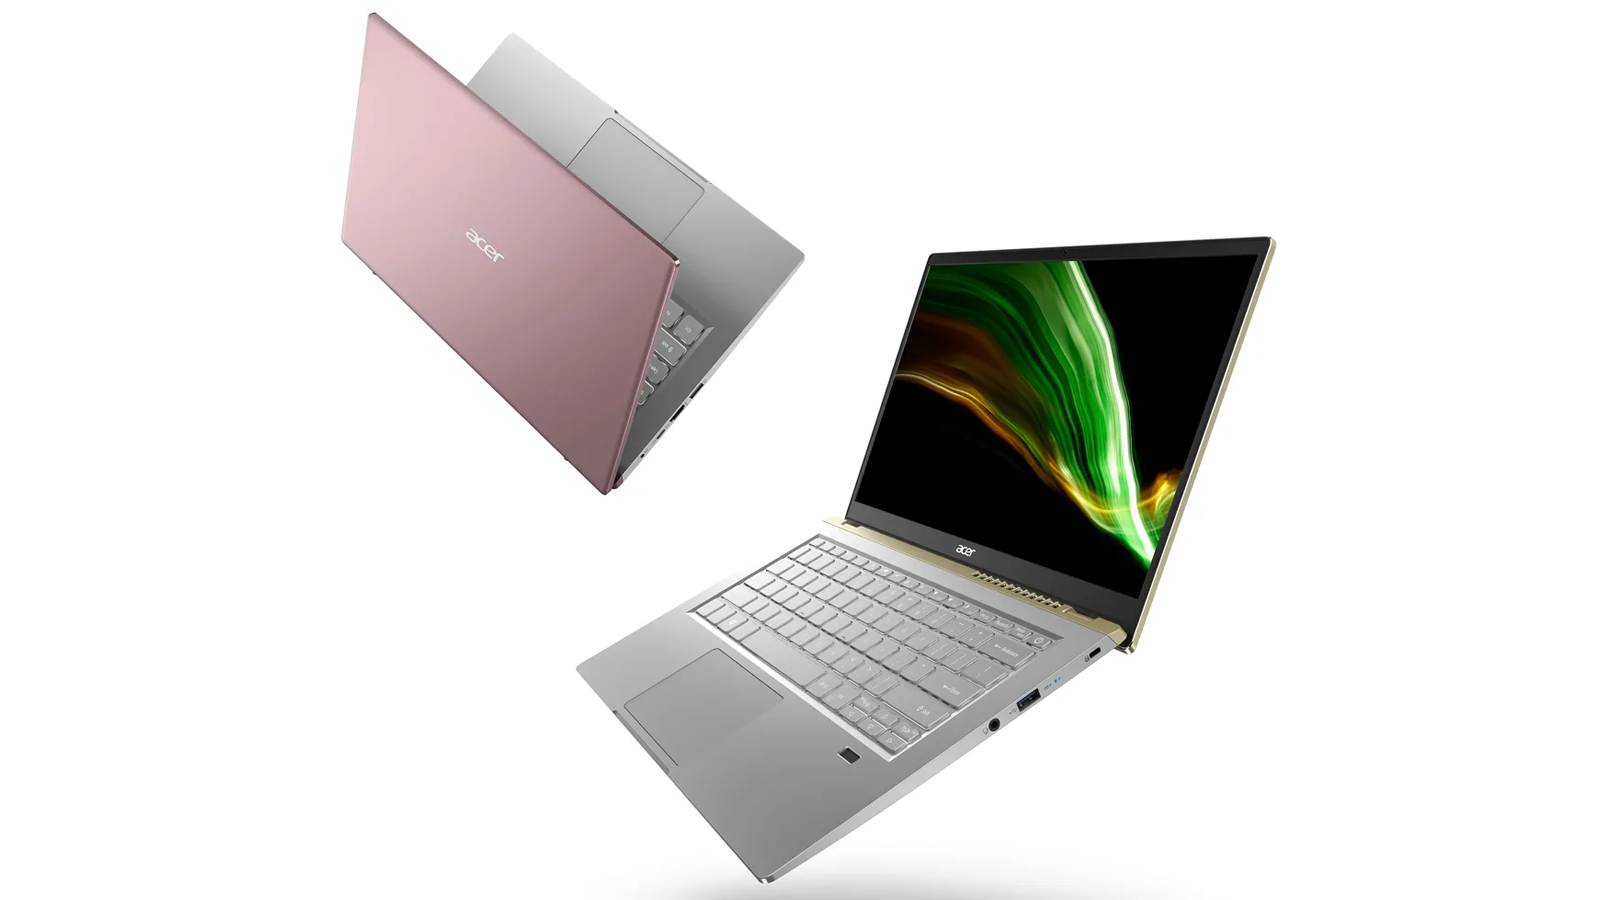 Two exterior views of the Acer Swift X laptop